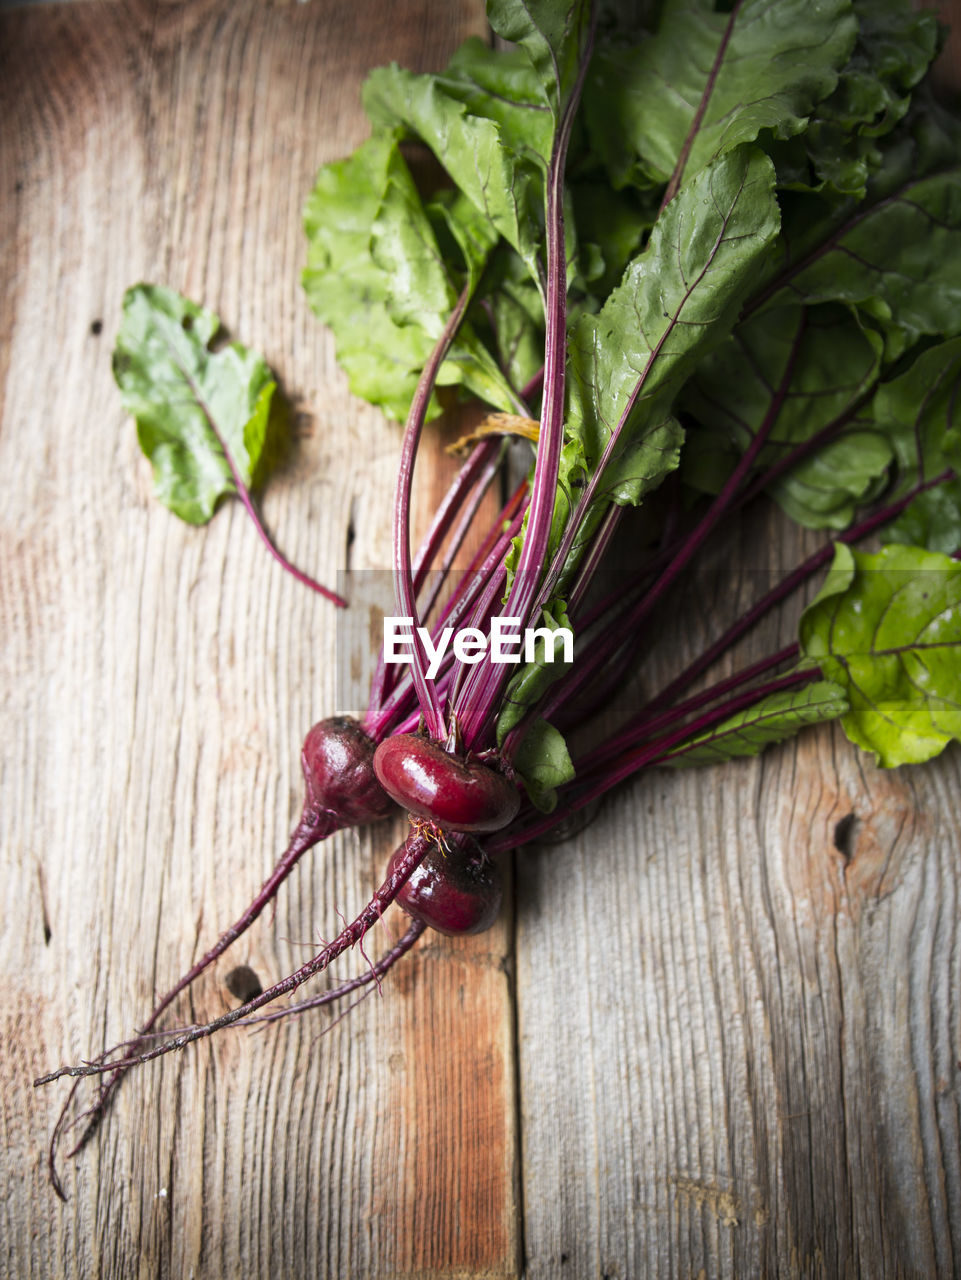 High angle view of beets on wooden table